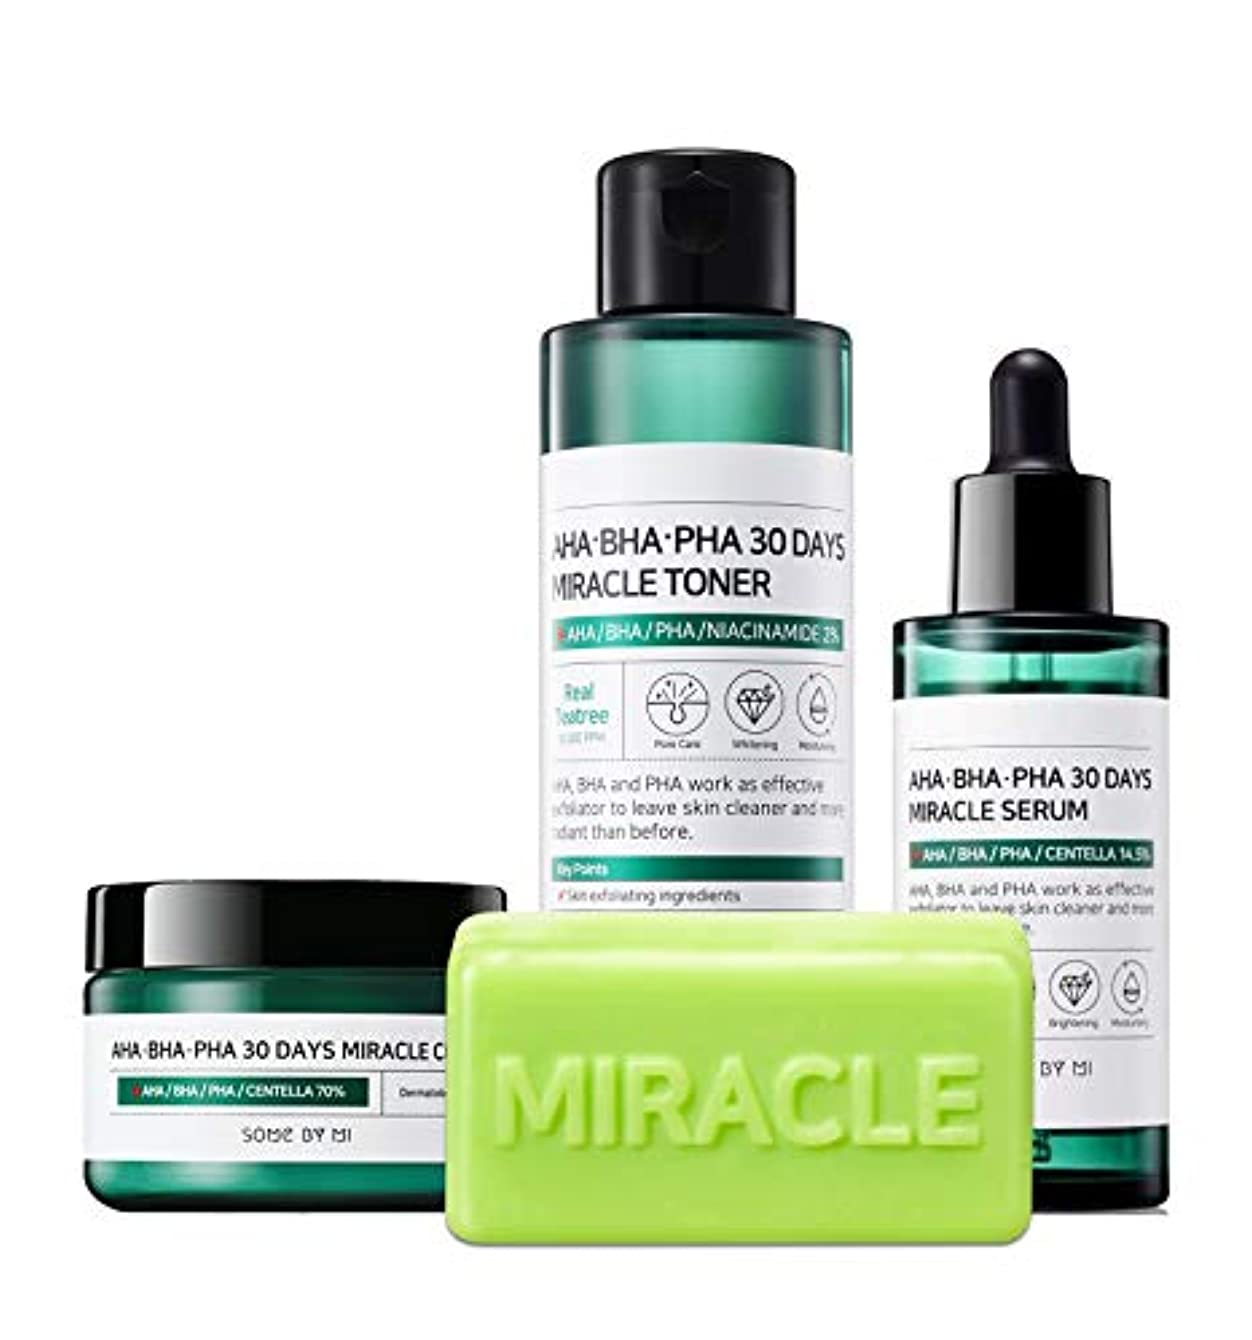 Somebymi (サムバイミー) AHA BHA PHA Miracle Series Full Set 4 Pcs (Soap, Toner, Serum, Cream) Anti-acne Exfoliation...